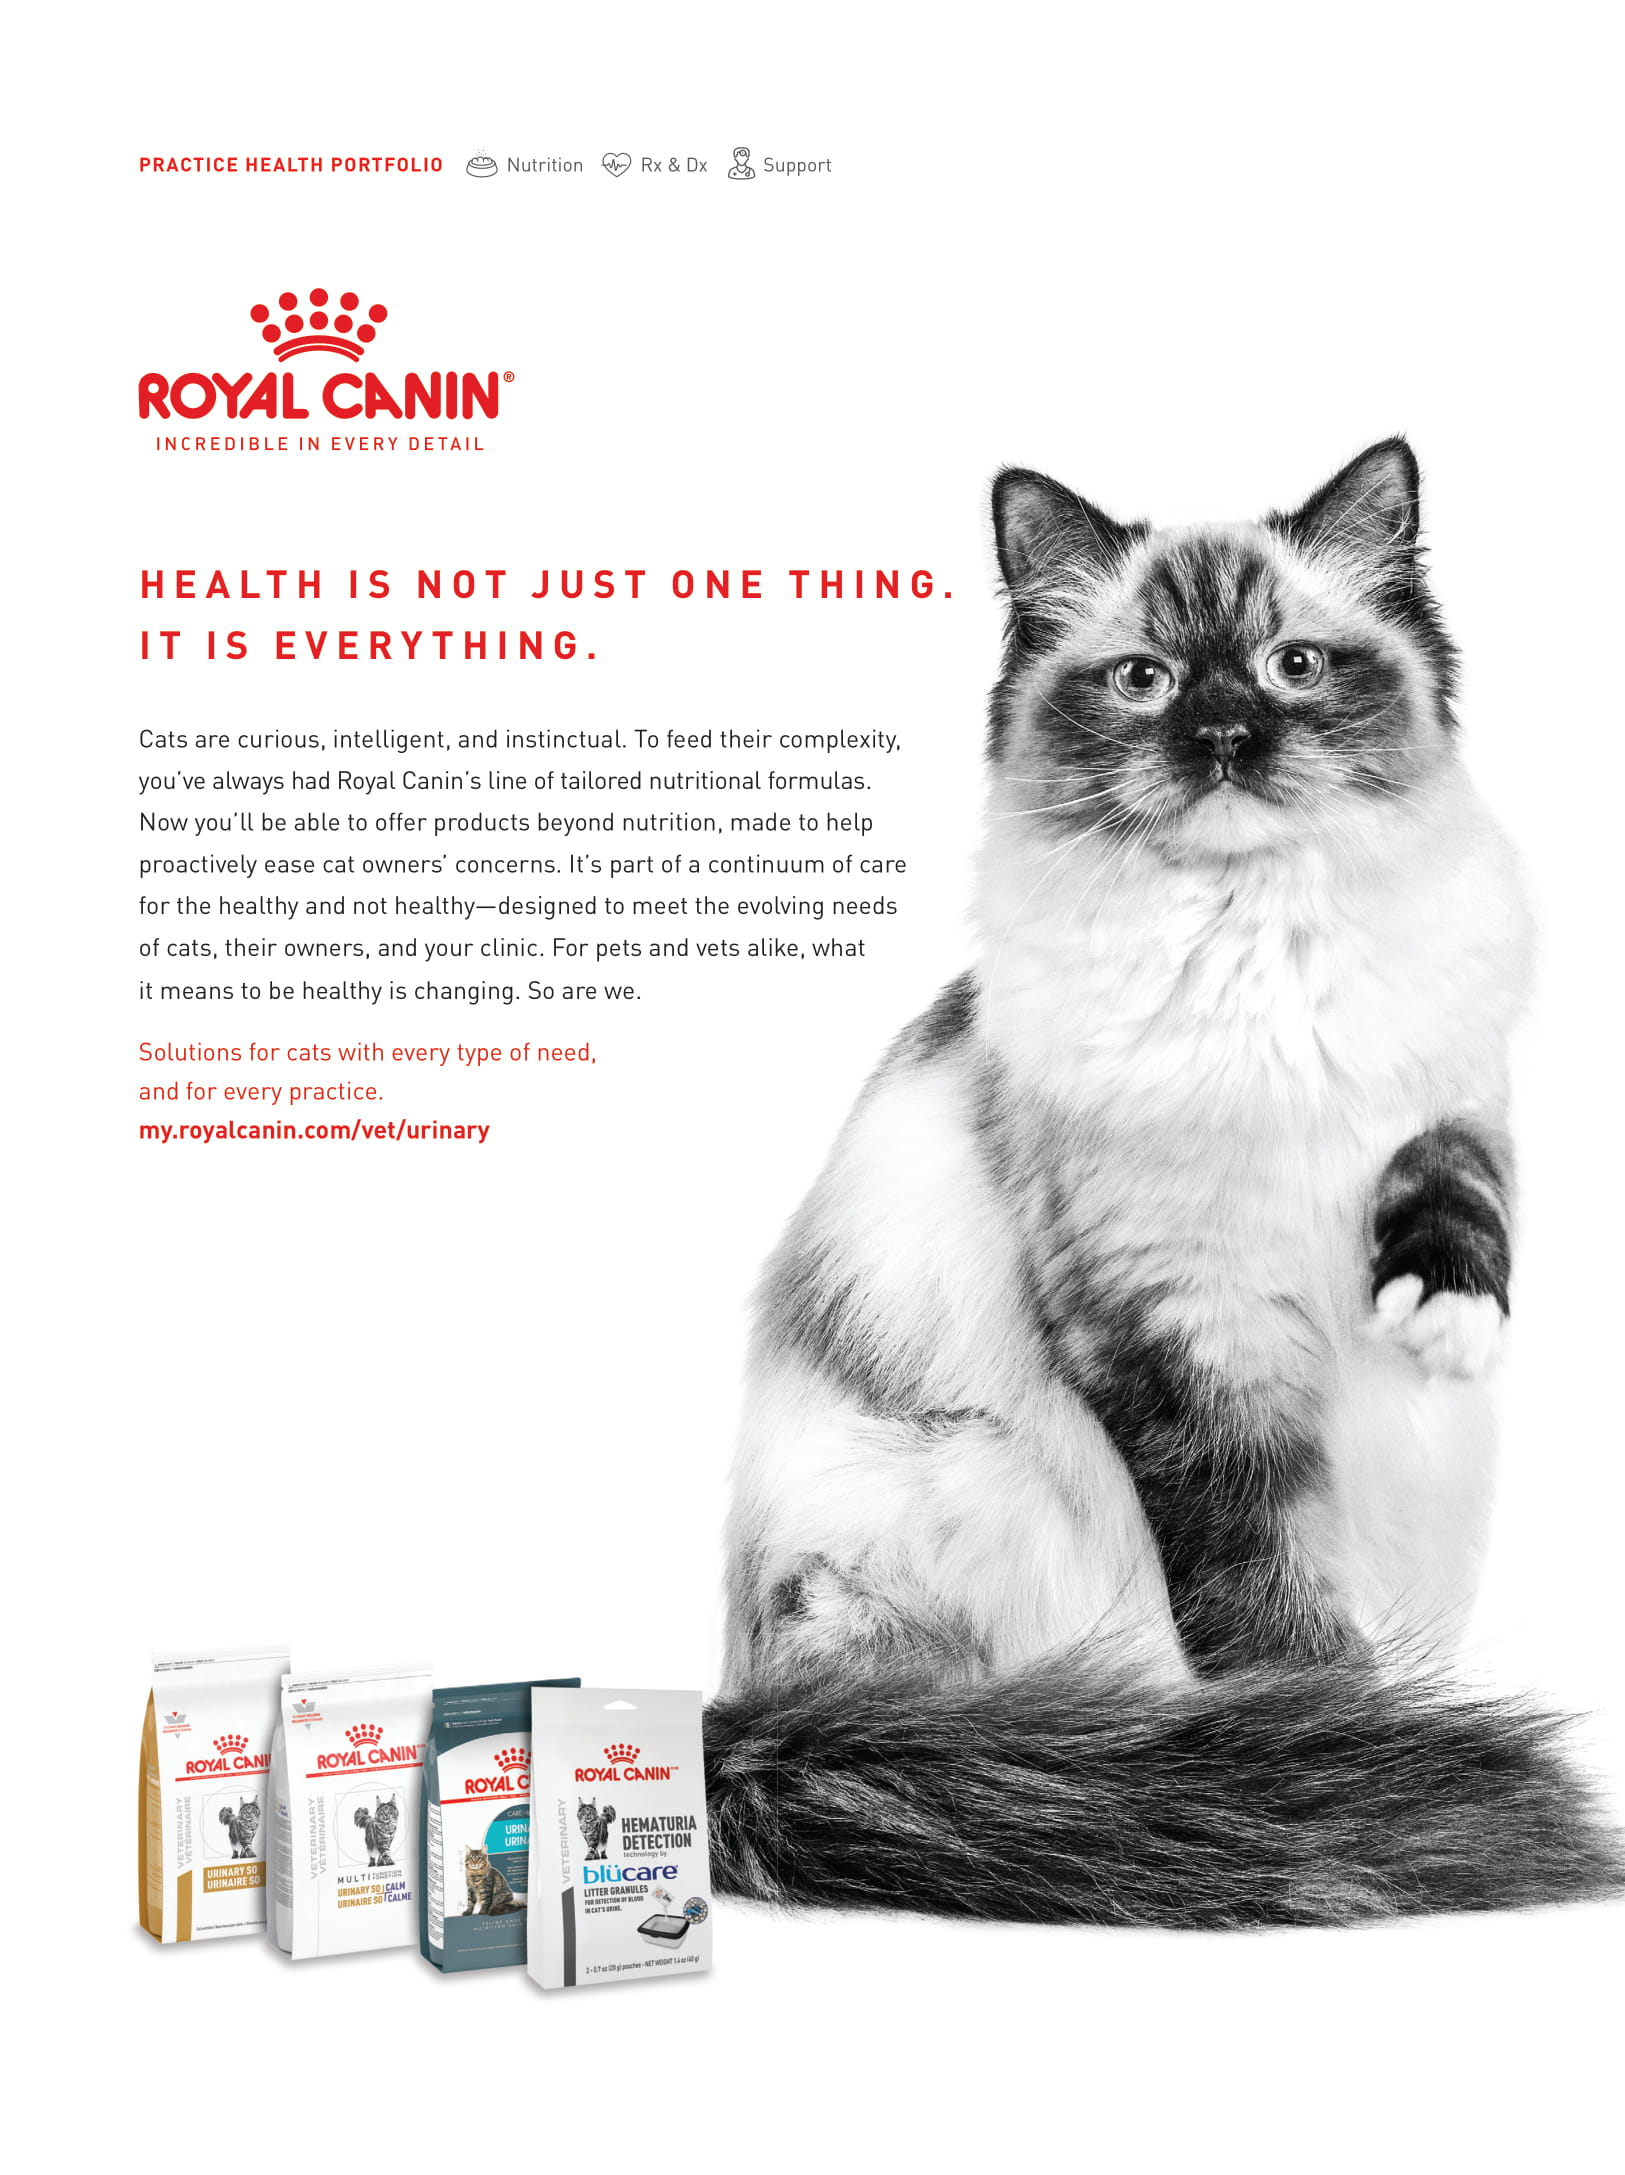 Royal Canin CB Oct 2020